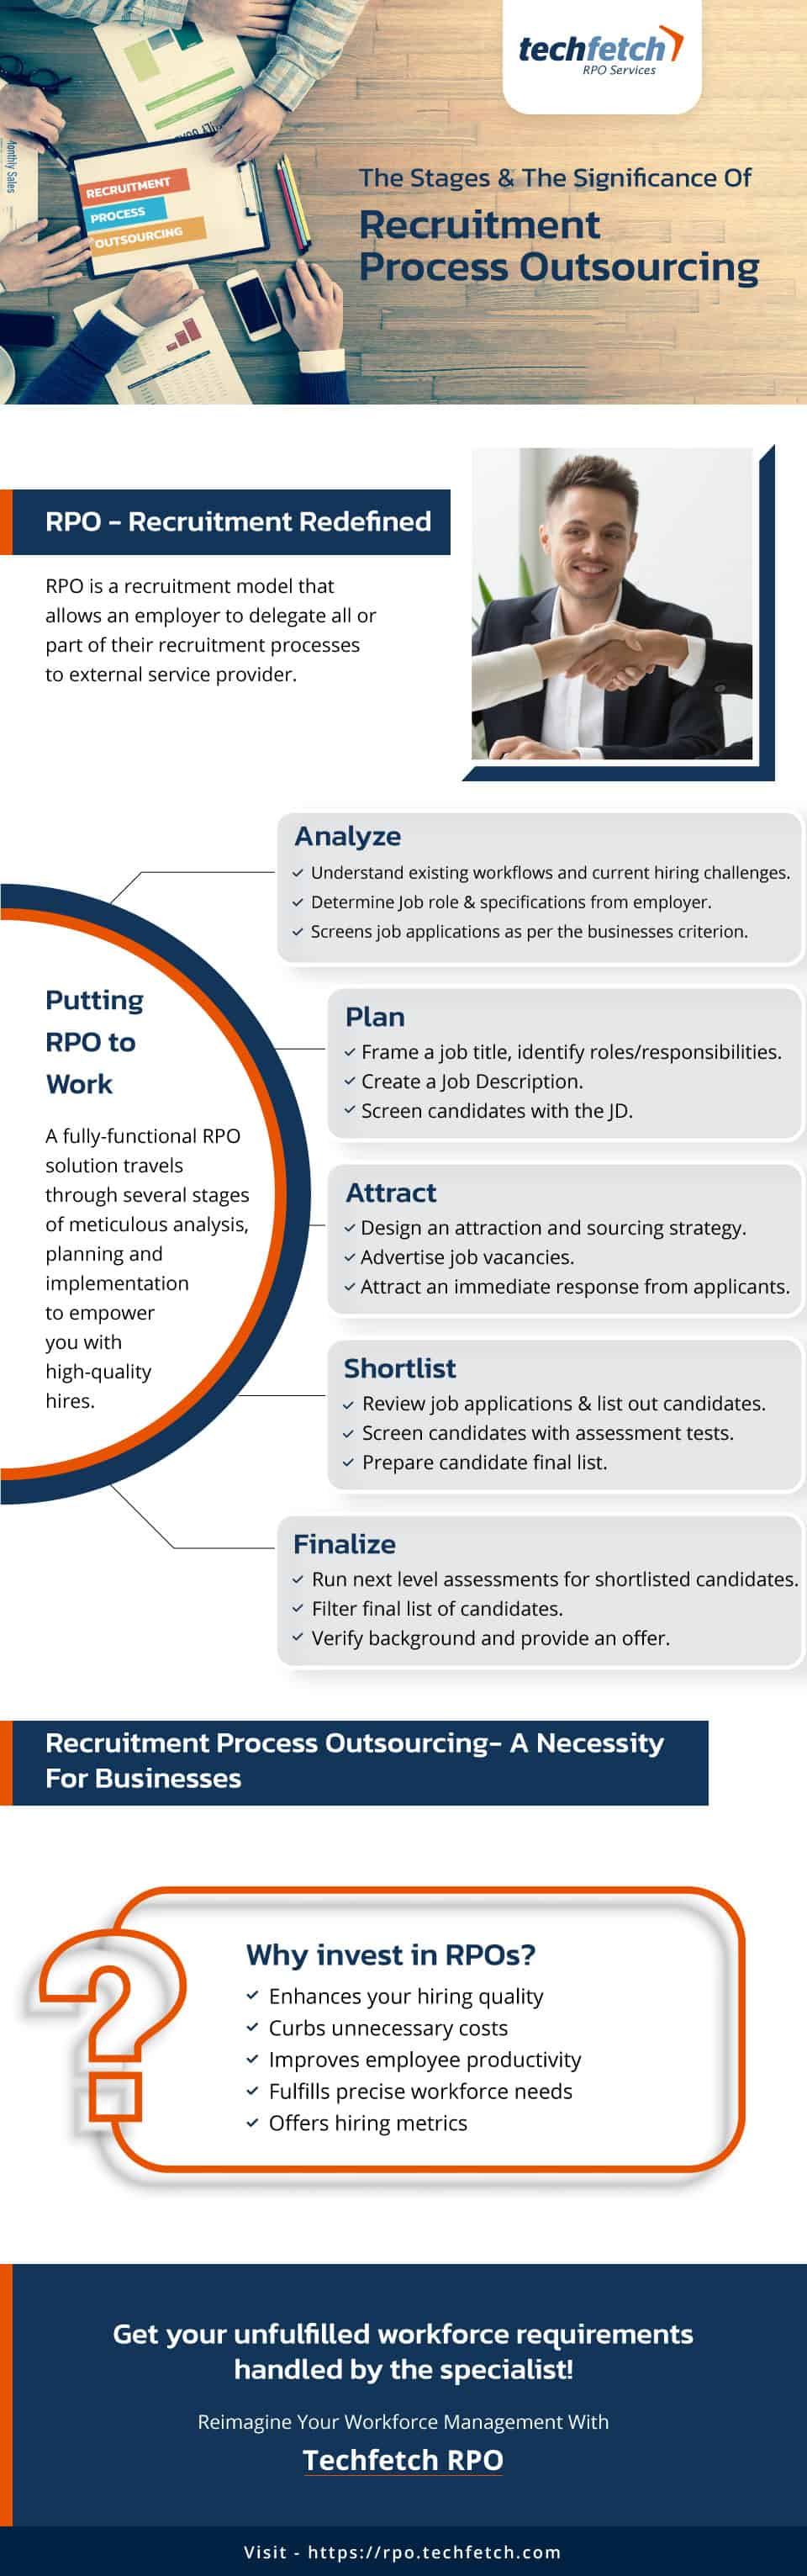 An infographic that illustrates the various steps in an organization's recruitment process and the importance of recruitment outsourcing services.